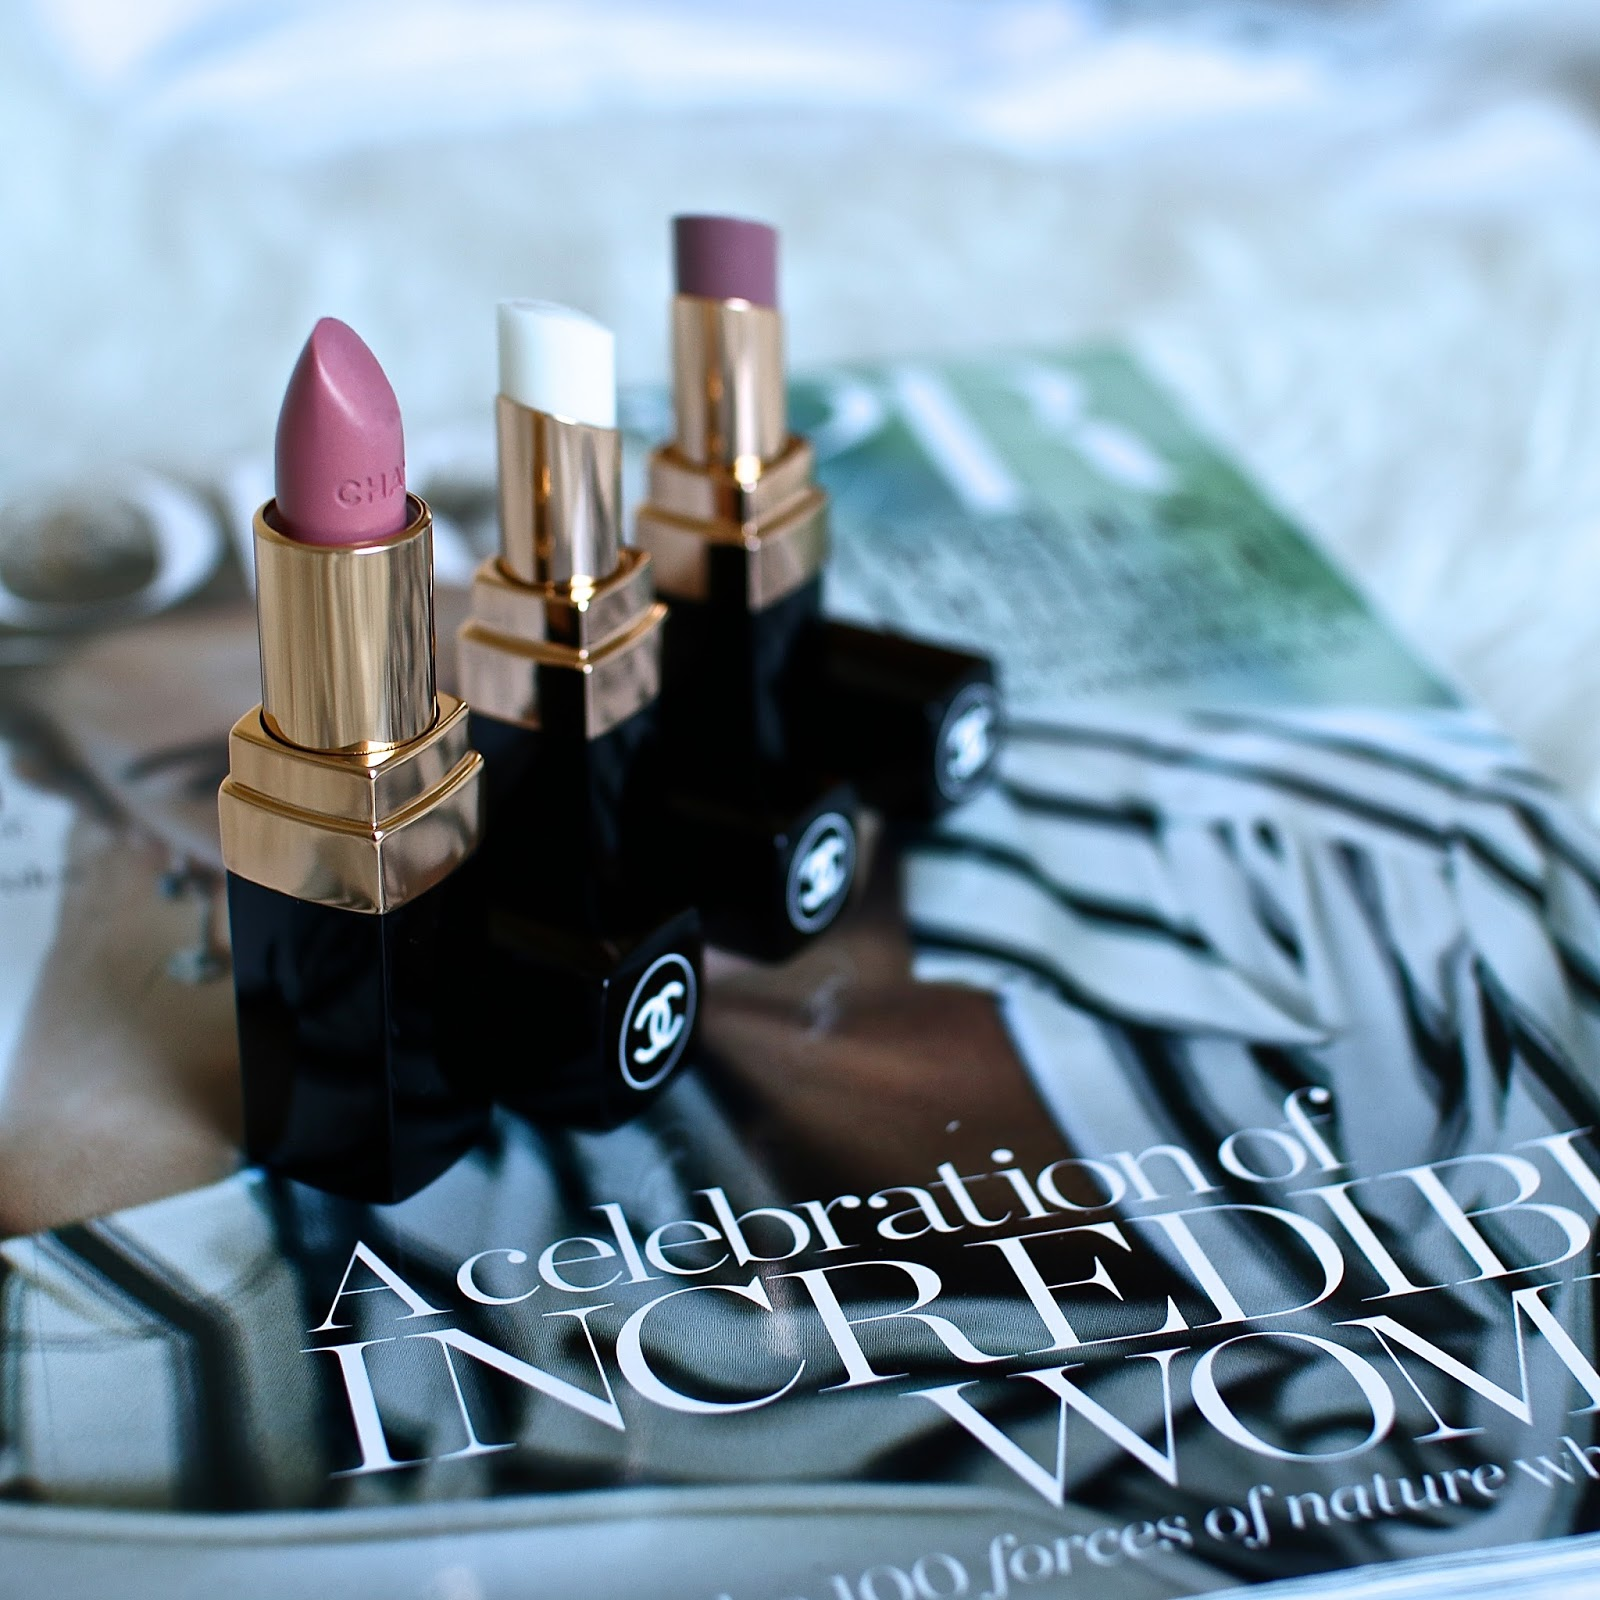 3 neutral coloured Chanel lipsticks sitting in a row on top of a Bazaar magazine